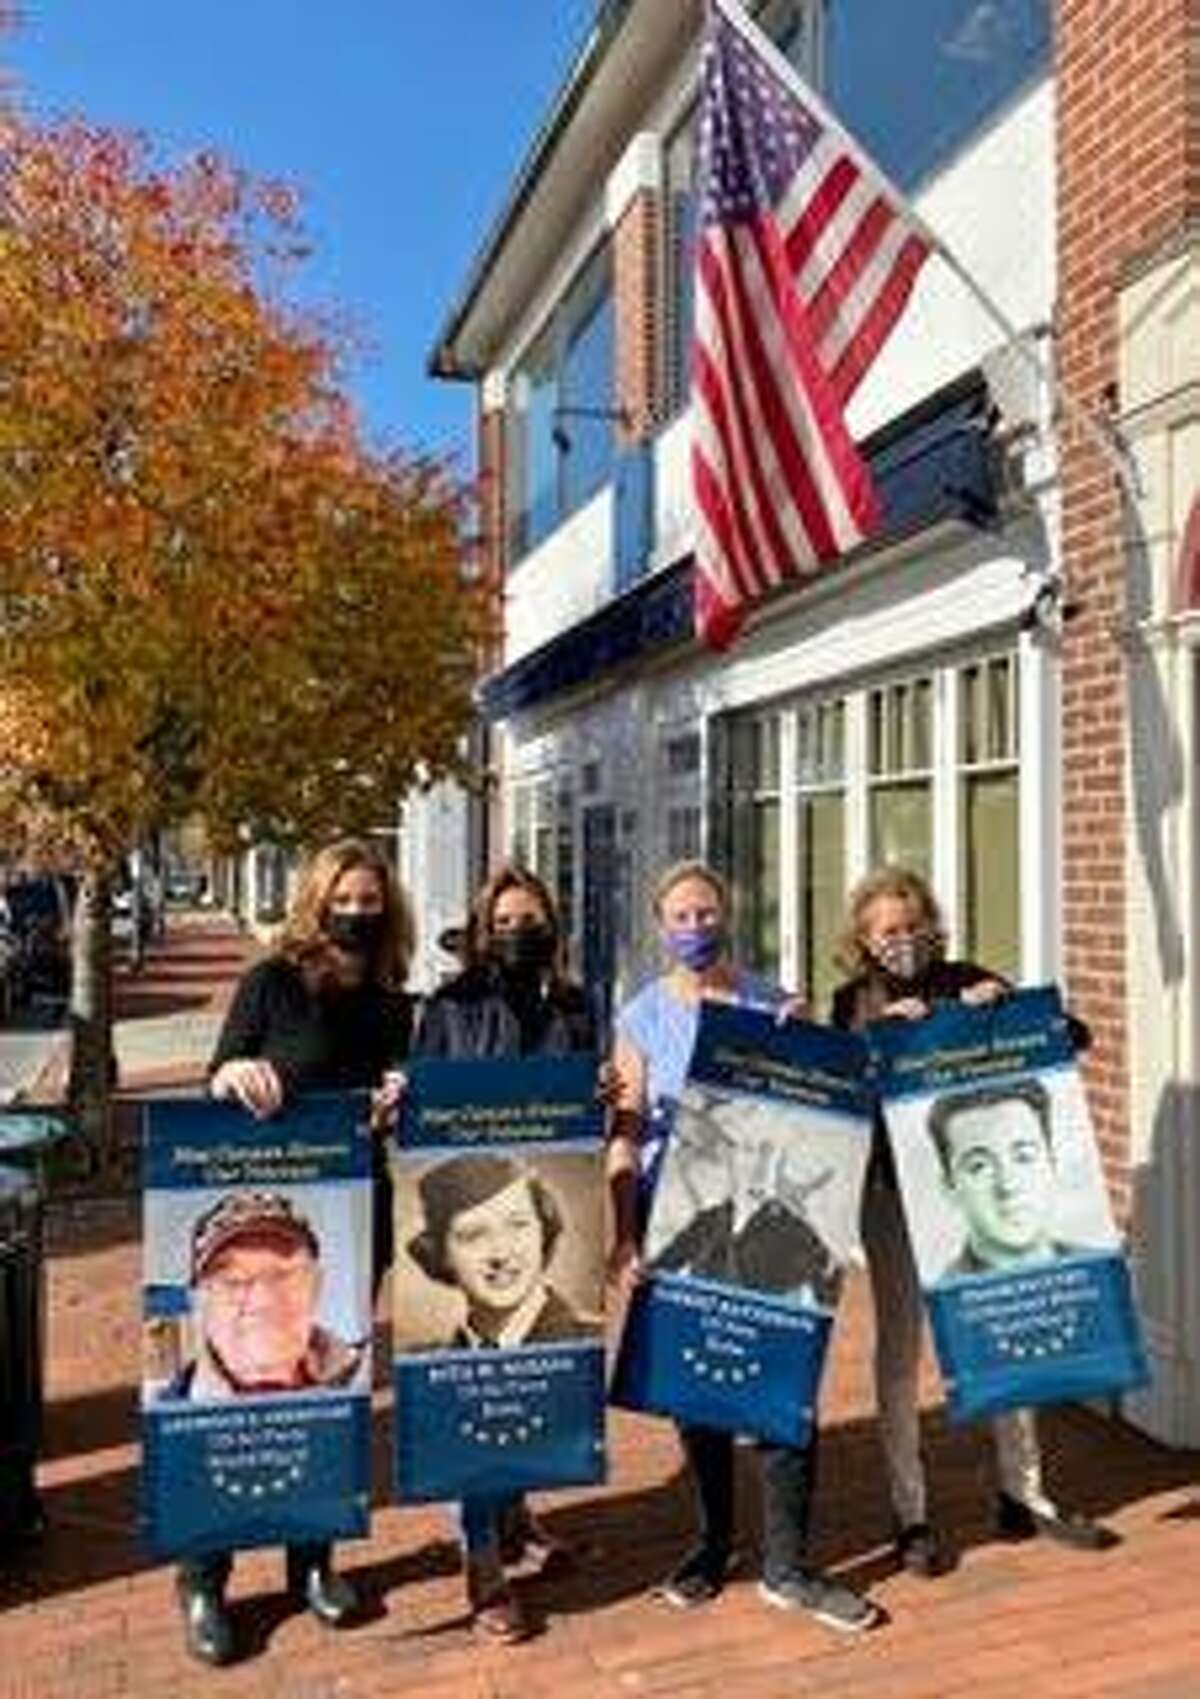 The New Canaan and Darien Moms of Military group had the honor of assisting in the hanging of the Veterans Banners in downtown New Canaan this past week, four members and banners of which are pictured.